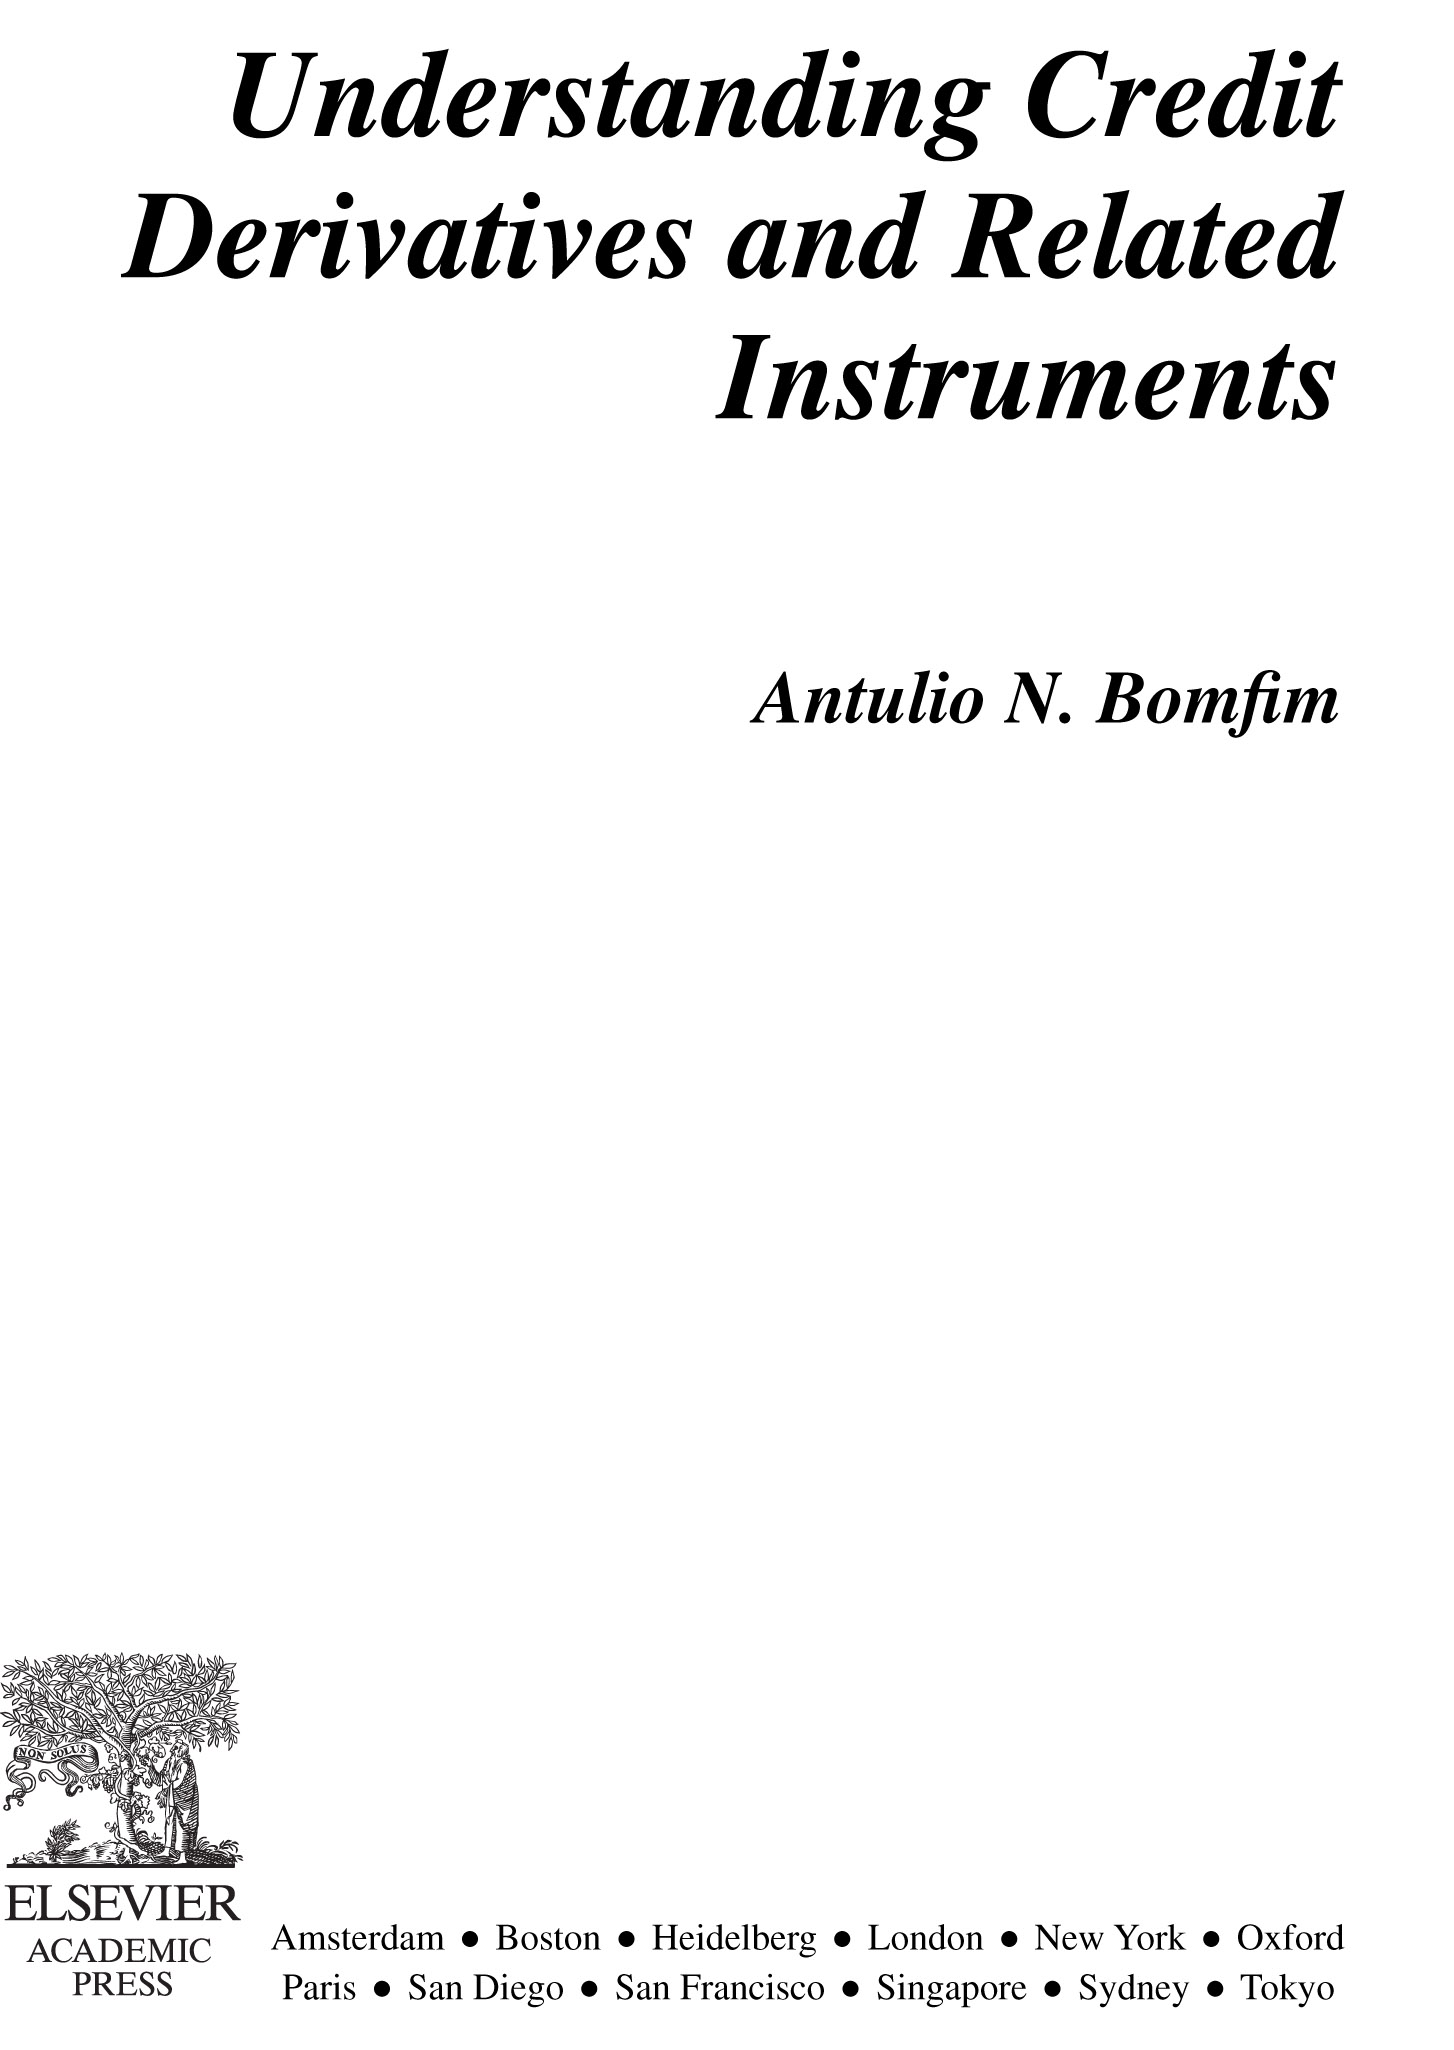 Download Ebook Understanding Credit Derivatives and Related Instruments by Antulio N. Bomfim Pdf